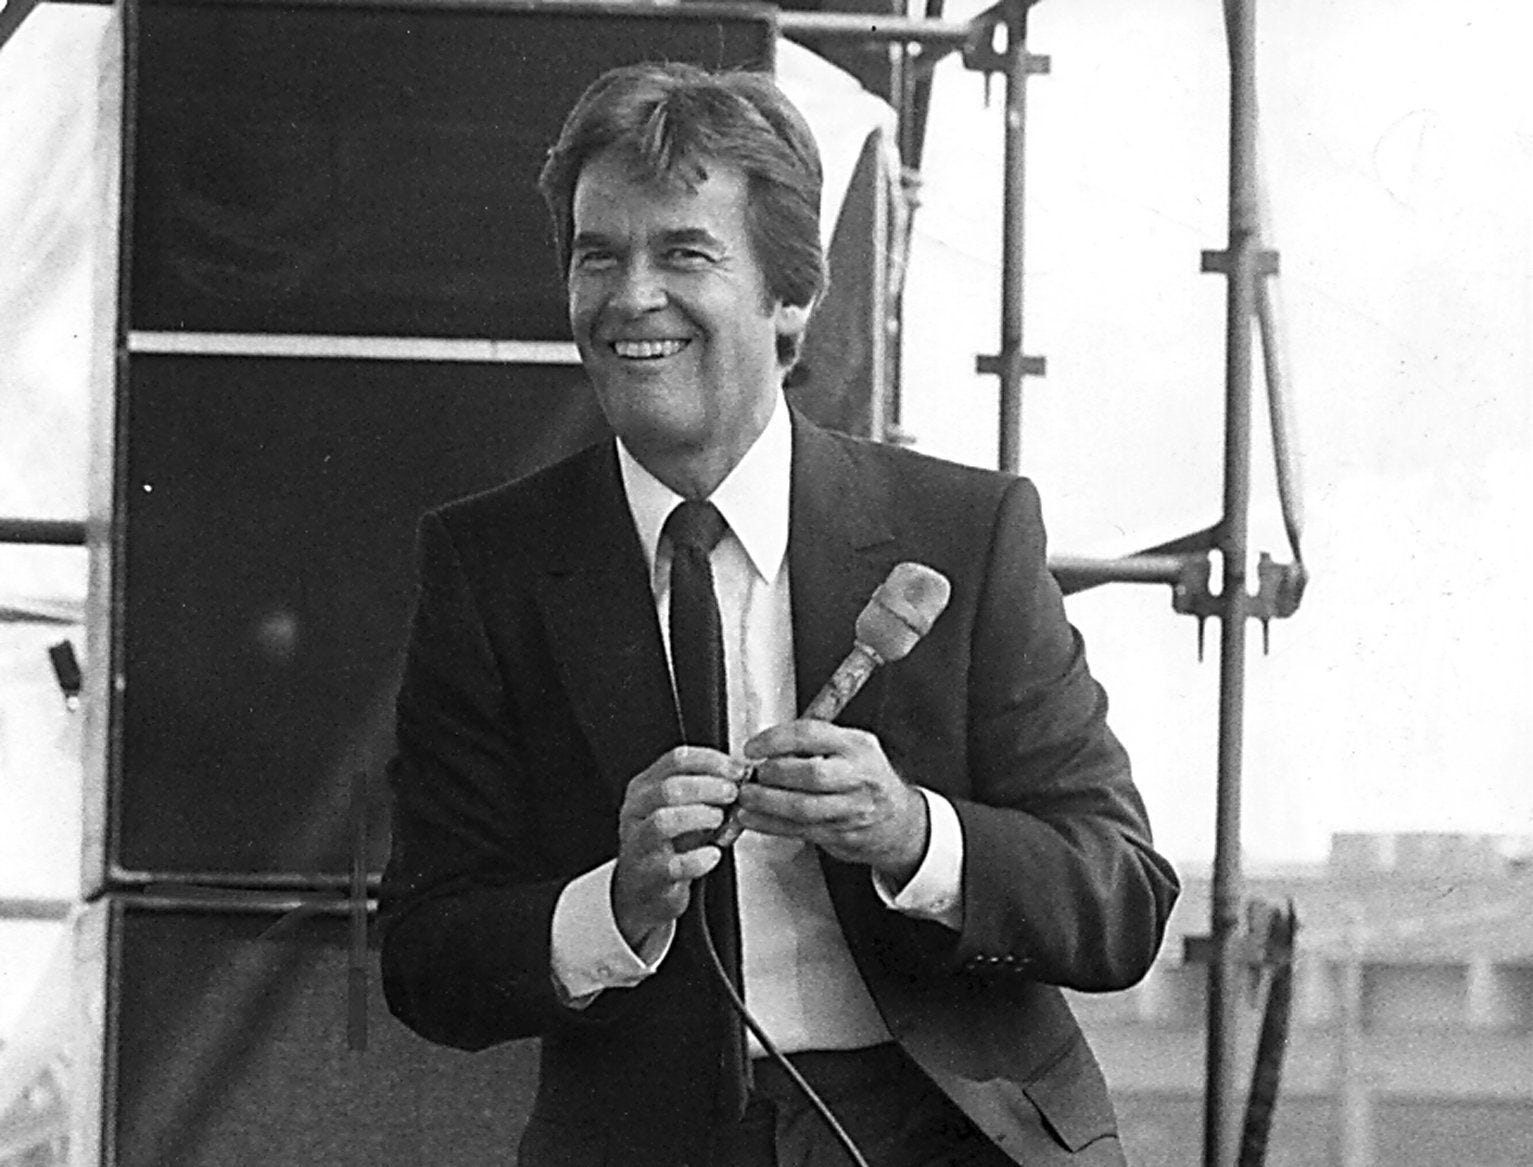 "Dick Clark, the 51-year-old who looks and sounds like a teenager, warmed up the crowd at MusicFest with some stories from the 1950's and by dancing a jig on 7 June 1981. He then gave way to Freddie Cannon, The Shirelles and The Coasters who kept things rocking. Jerry Lee Lewis was the headliner for the final day, which drew a crowd of 30,000. The ""Good Ol' Rock 'n' Roll Show"" was the featured event as the Cotton Carnival festival completed its run at the Mid-South Fairgrounds. Total attendance for the 10 days was 192,000."